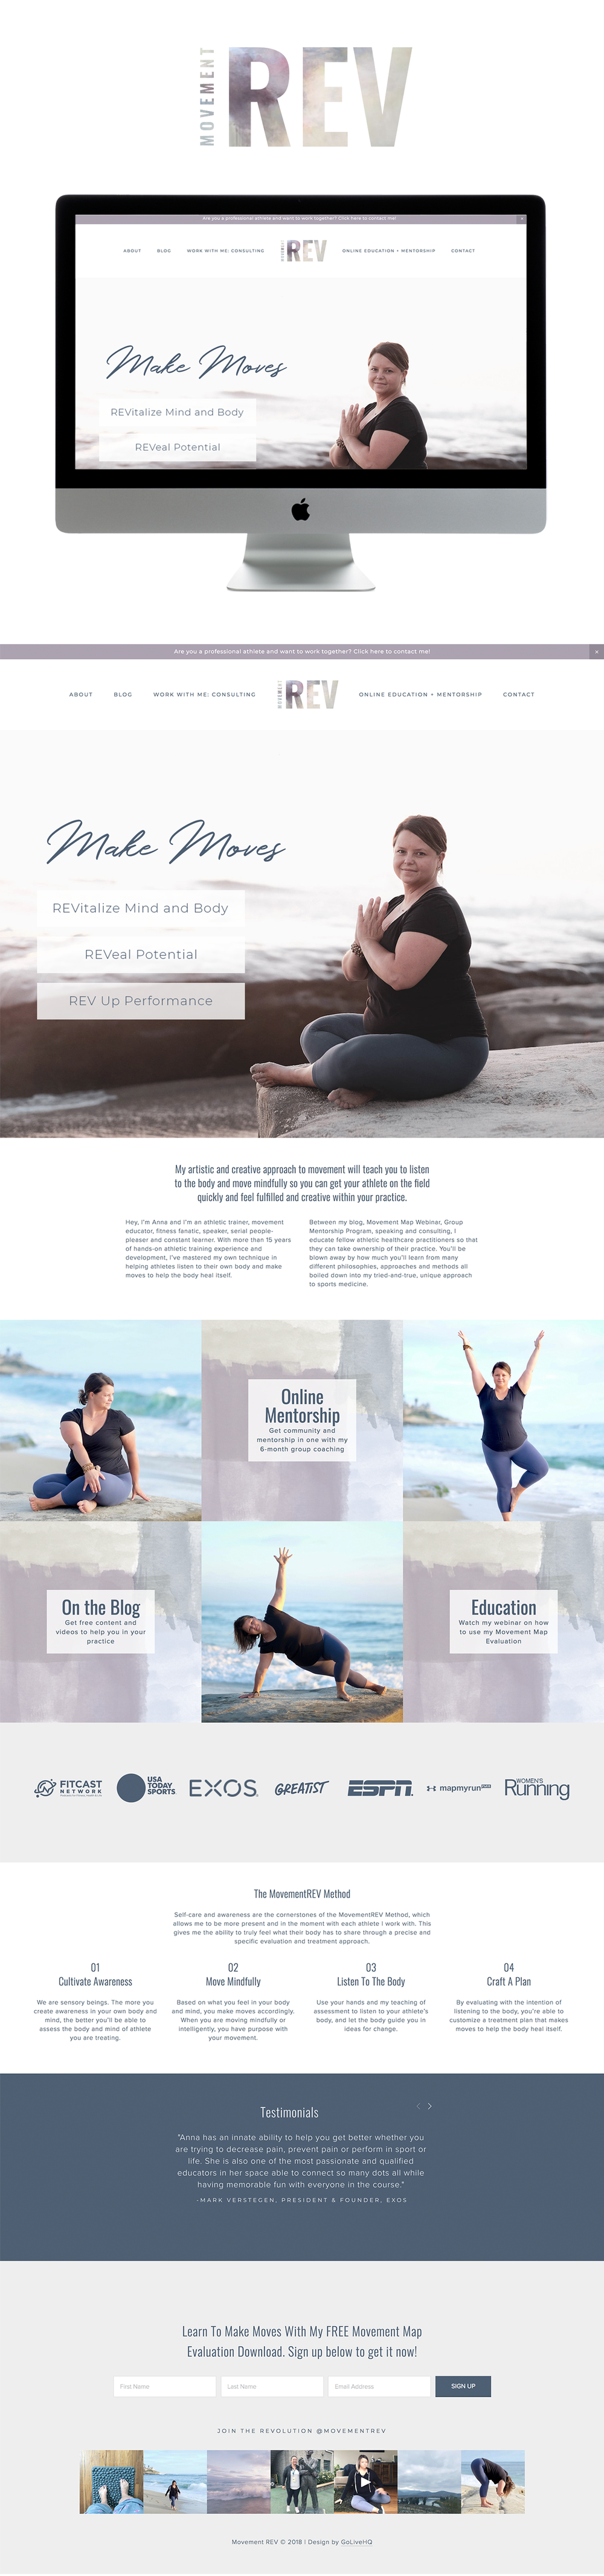 Simple, clean, watercolor-inspired website design for coaches | Website Design by Go Live HQ